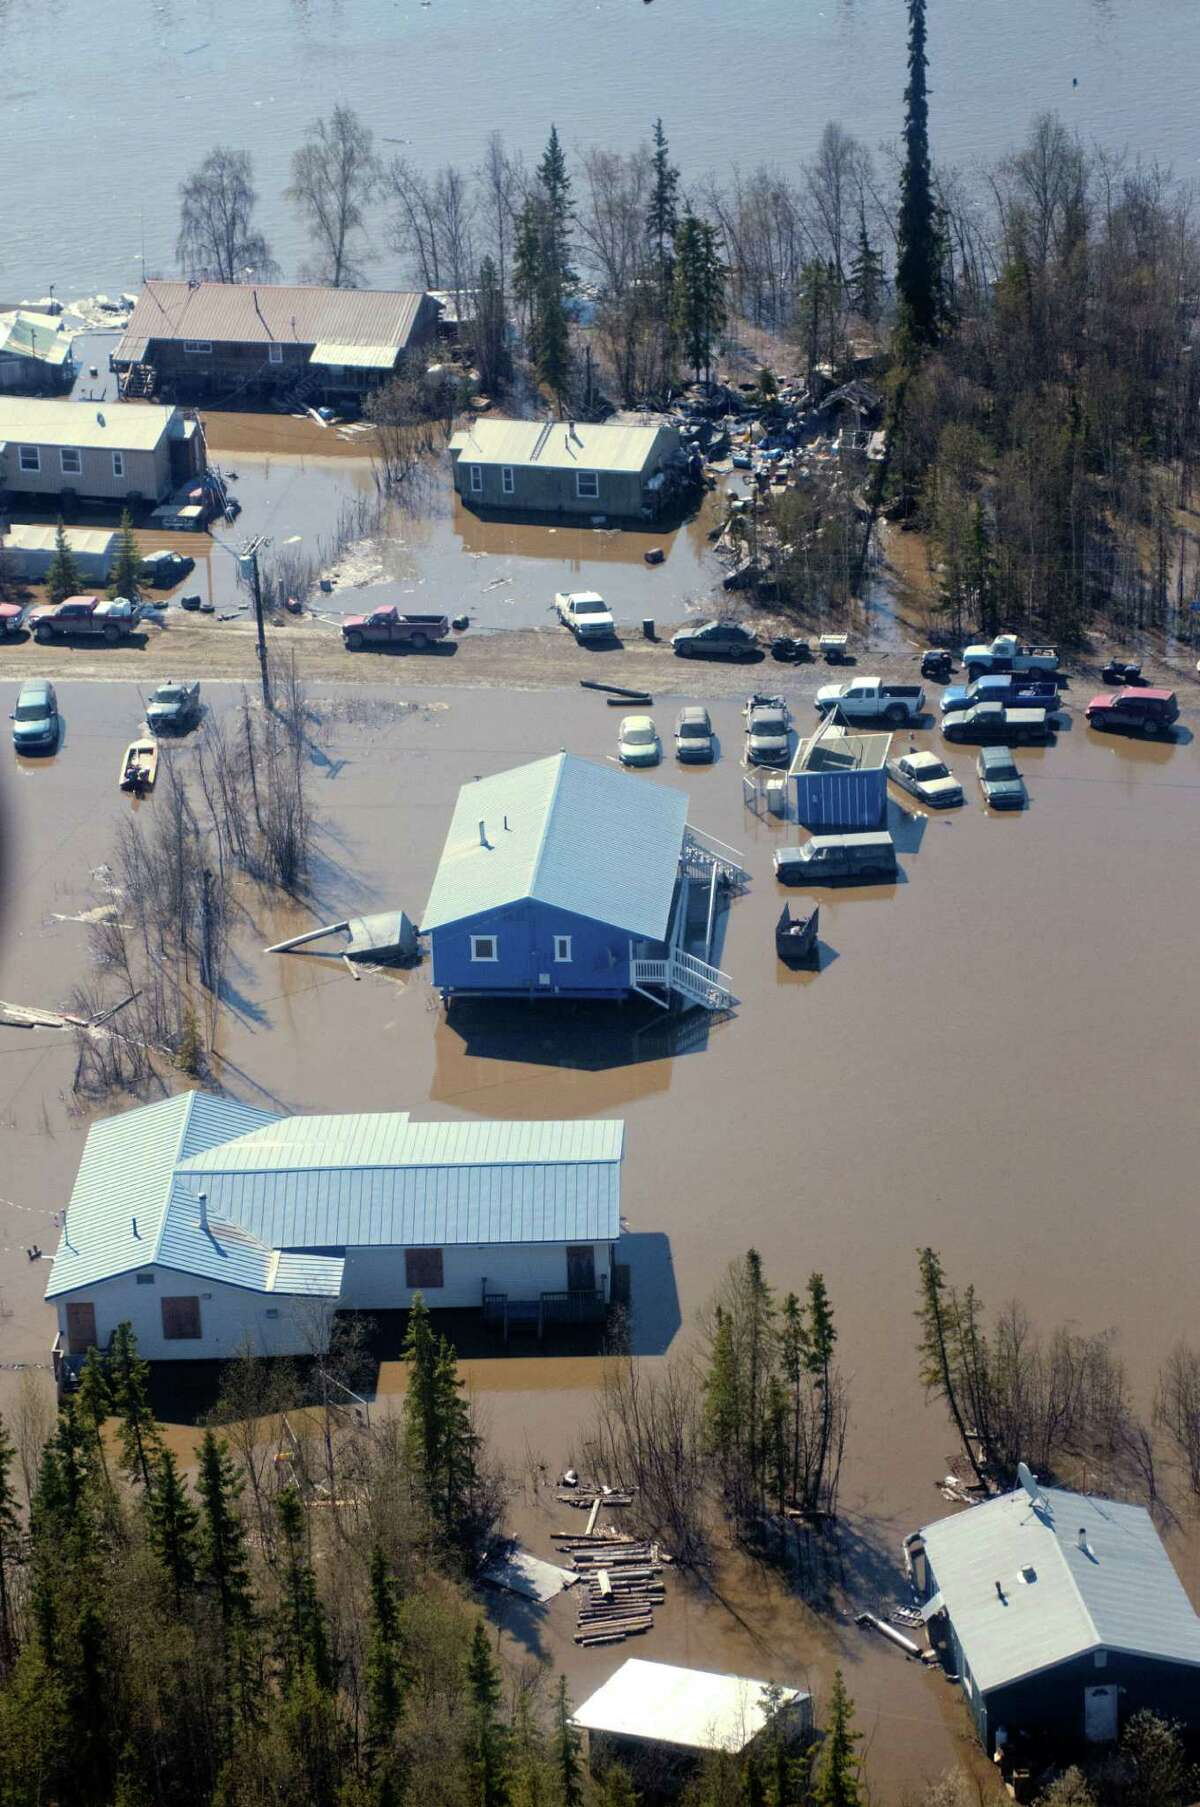 In this May 28, 2013 photo, the town of Galena, Alaska is flooded by the Yukon River during the breakup of winter ice. Several hundred people are estimated to have fled the community of Galena in Alaska's interior, where a river ice jam has caused major flooding, sending water washing over roads and submerging buildings.